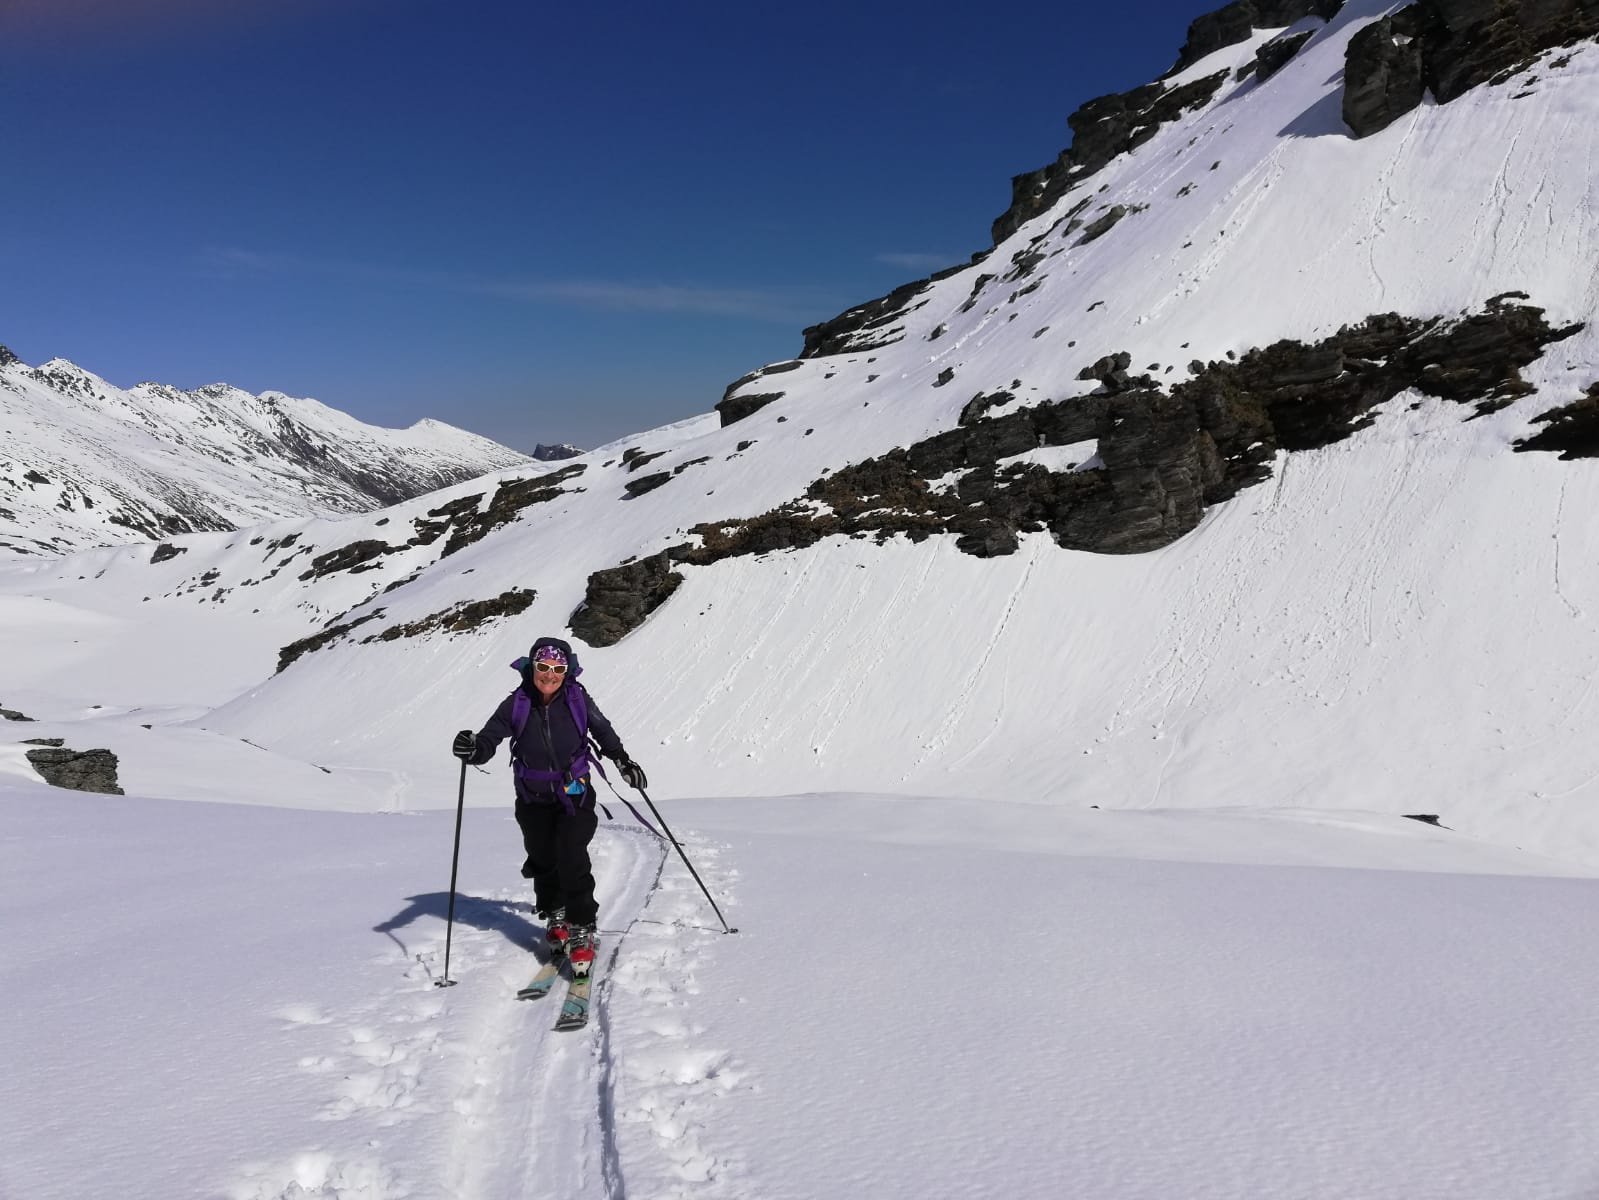 Skinning back up to curvy basin saddle on recent day Ski tour  @ Remarkables. photo credit : Sue Notley